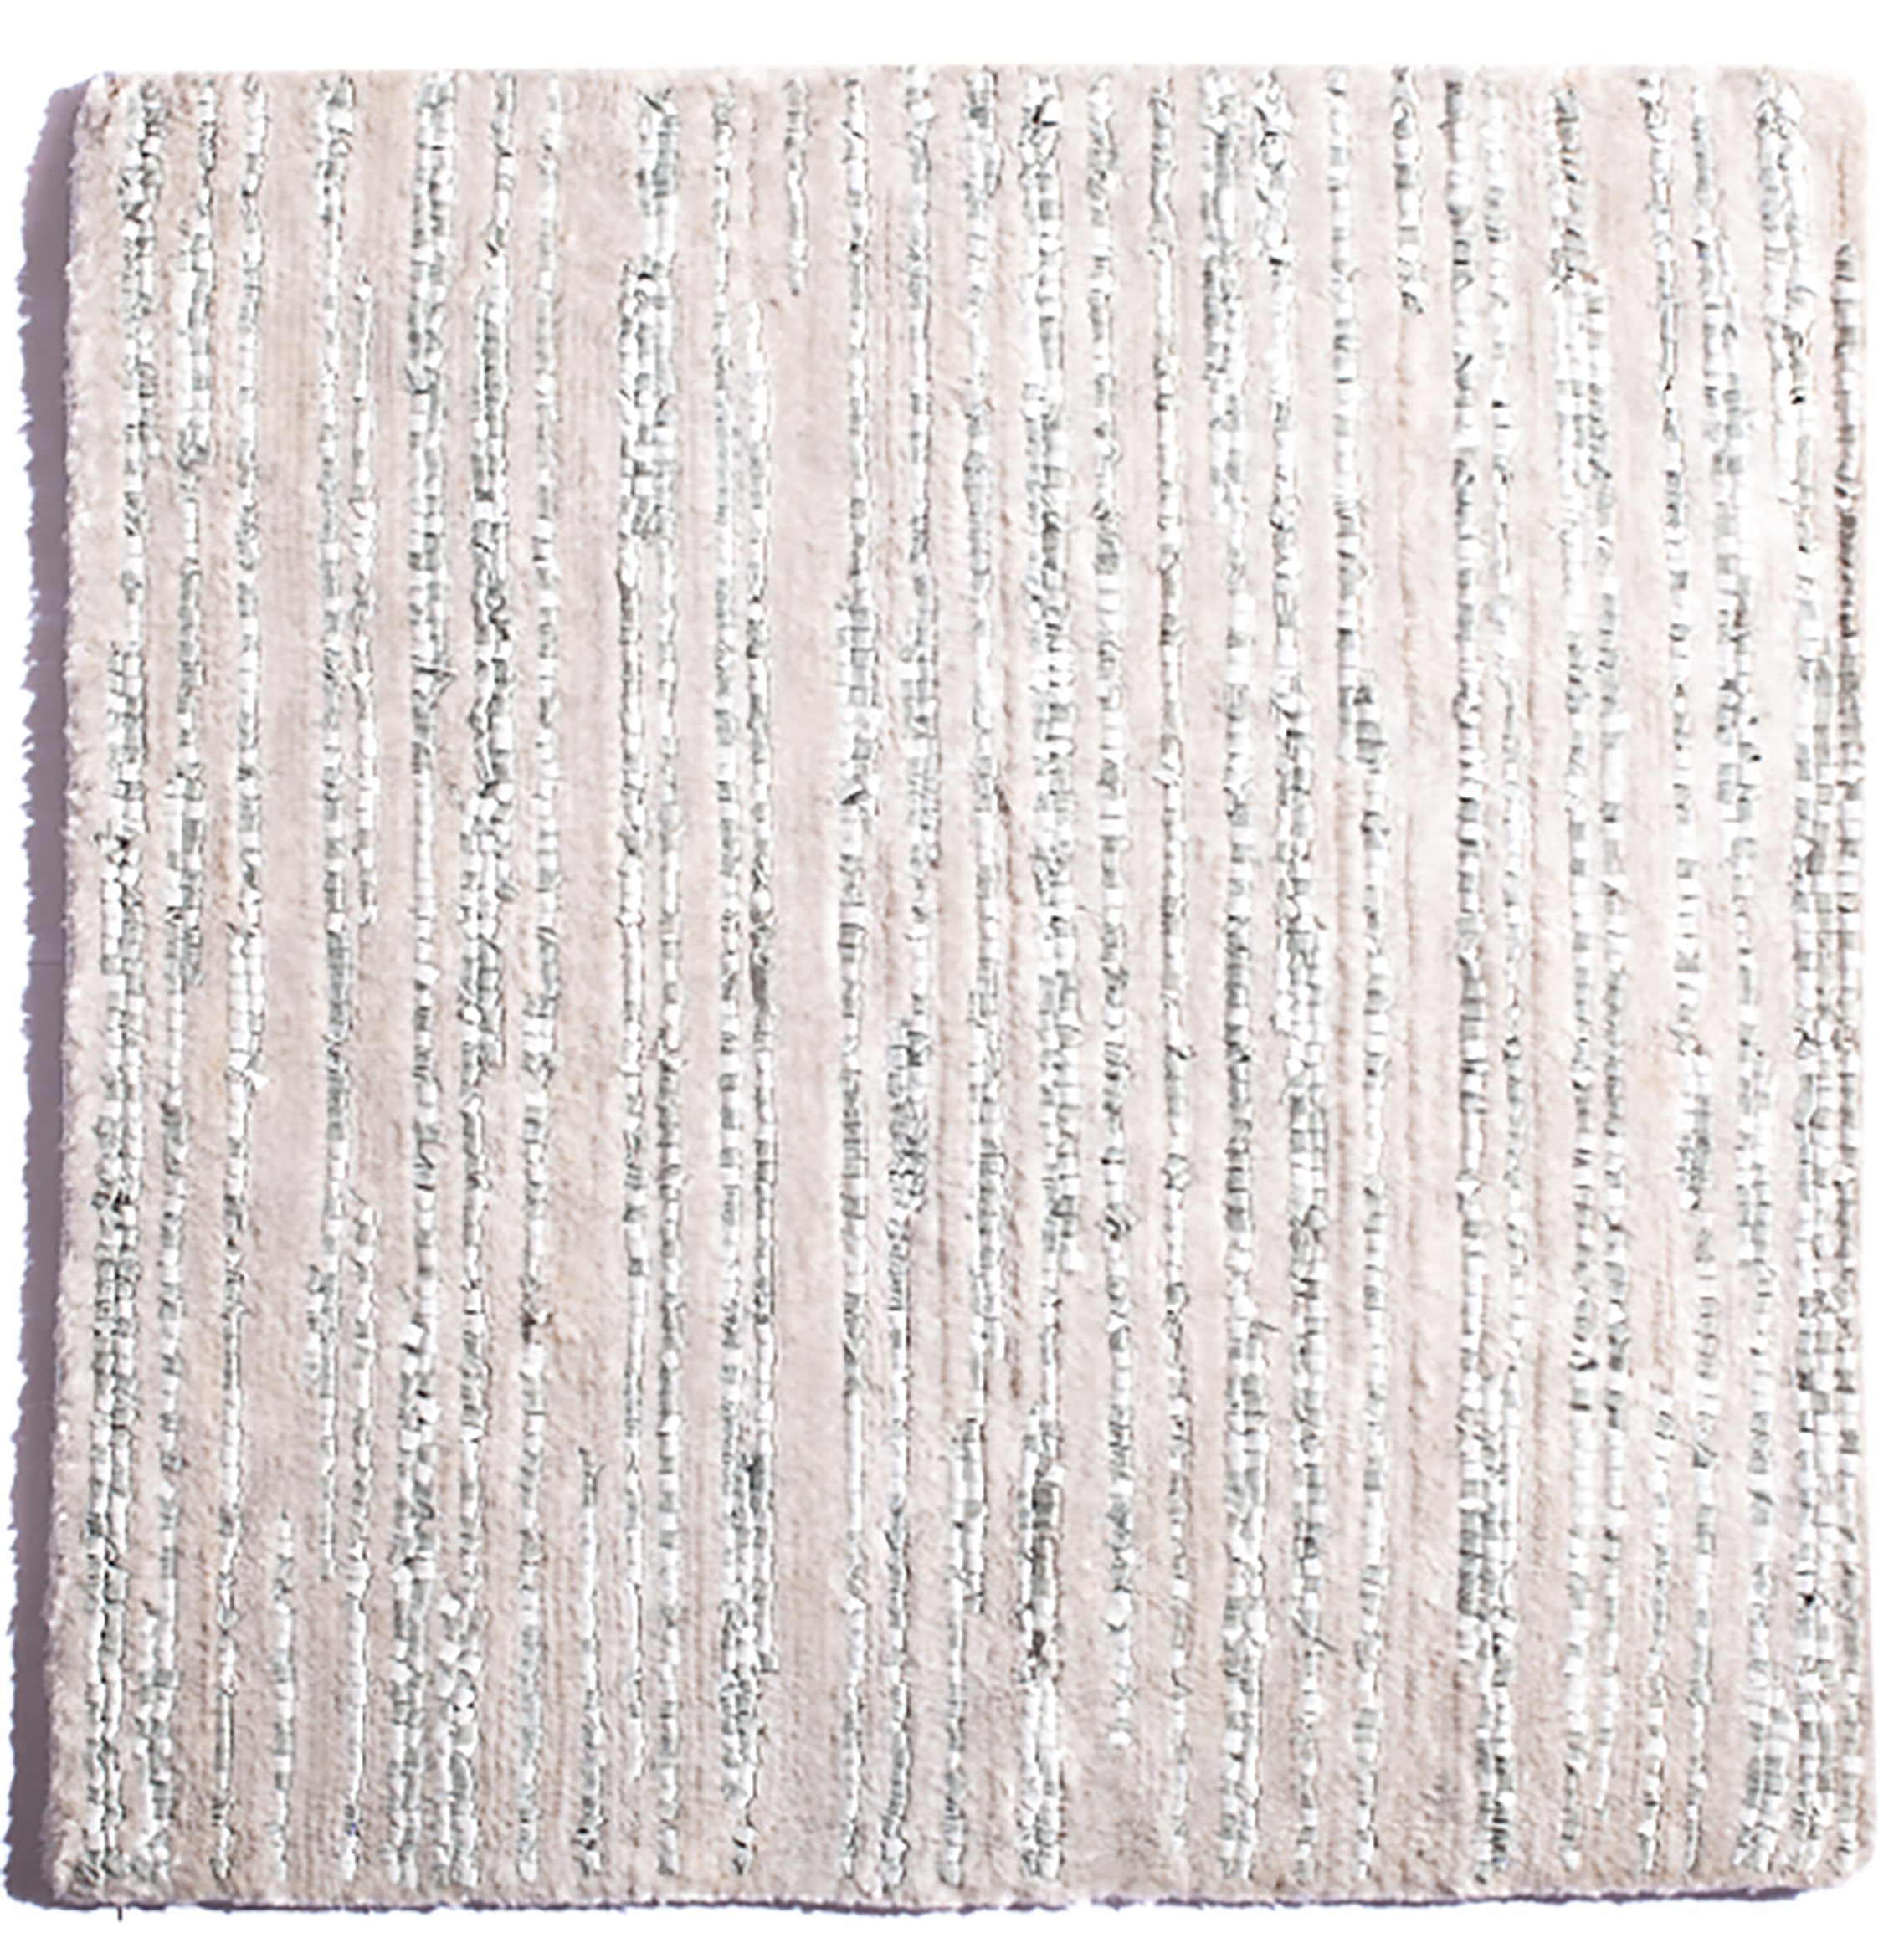 Hand-Knotted  rug, banana silk and leather blend, PhB design